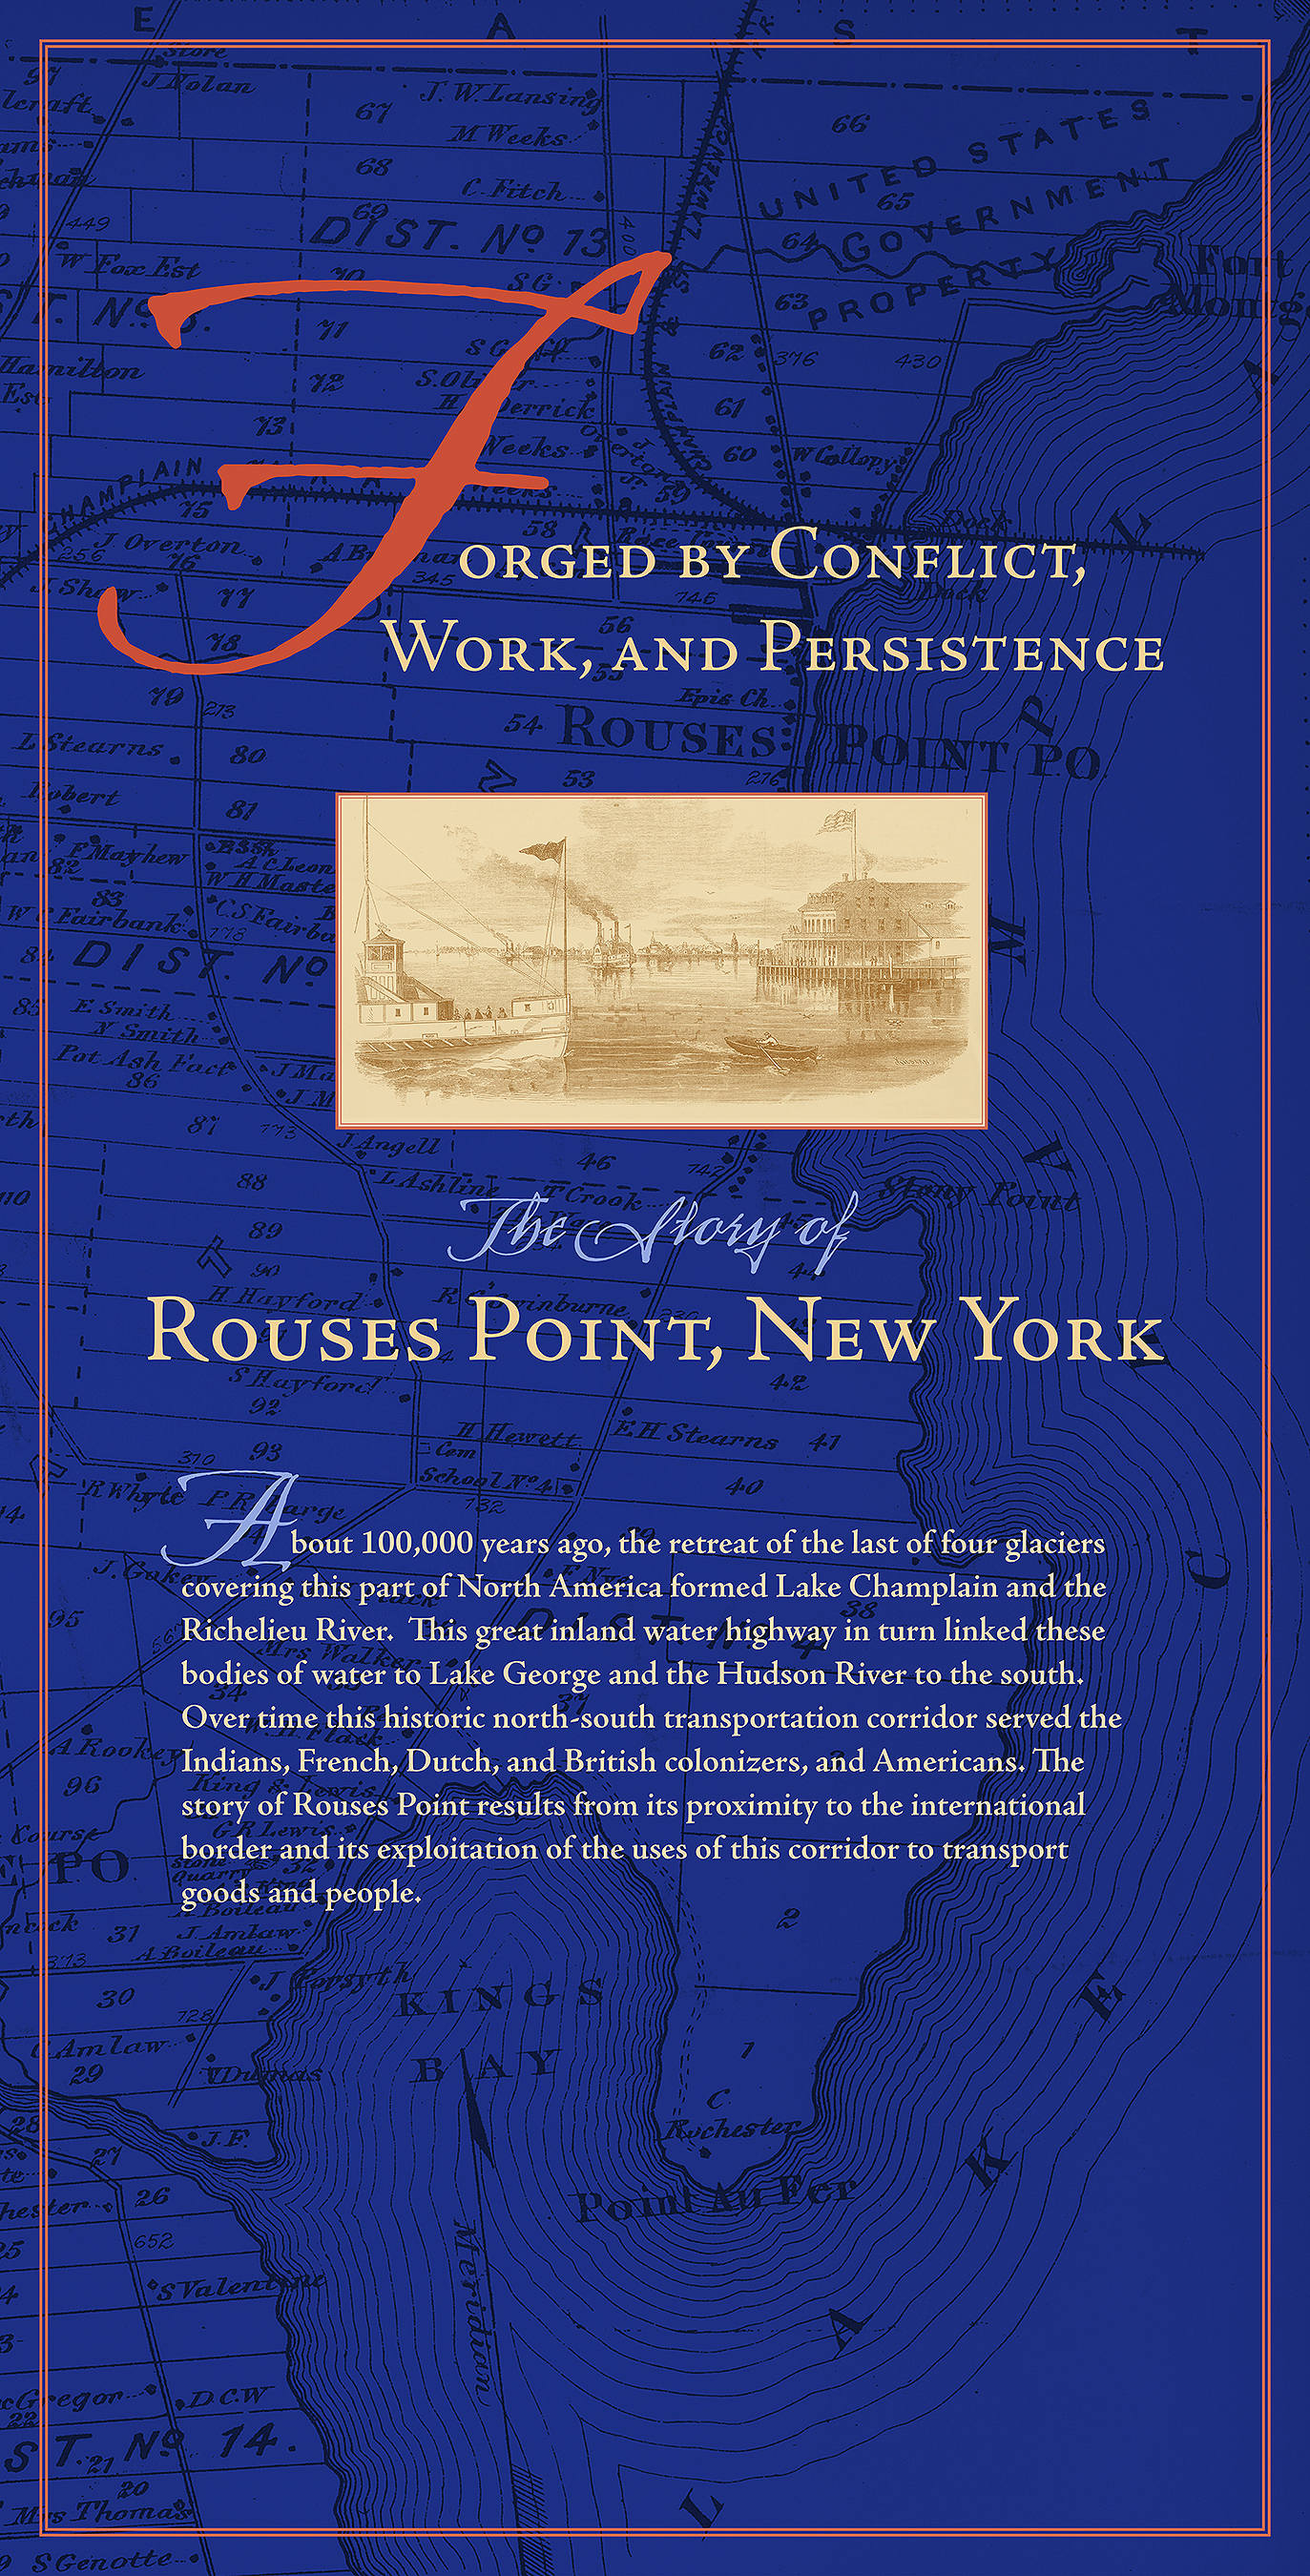 Banner for Rouses Point Visitor Center   Rouses Point, N.Y.